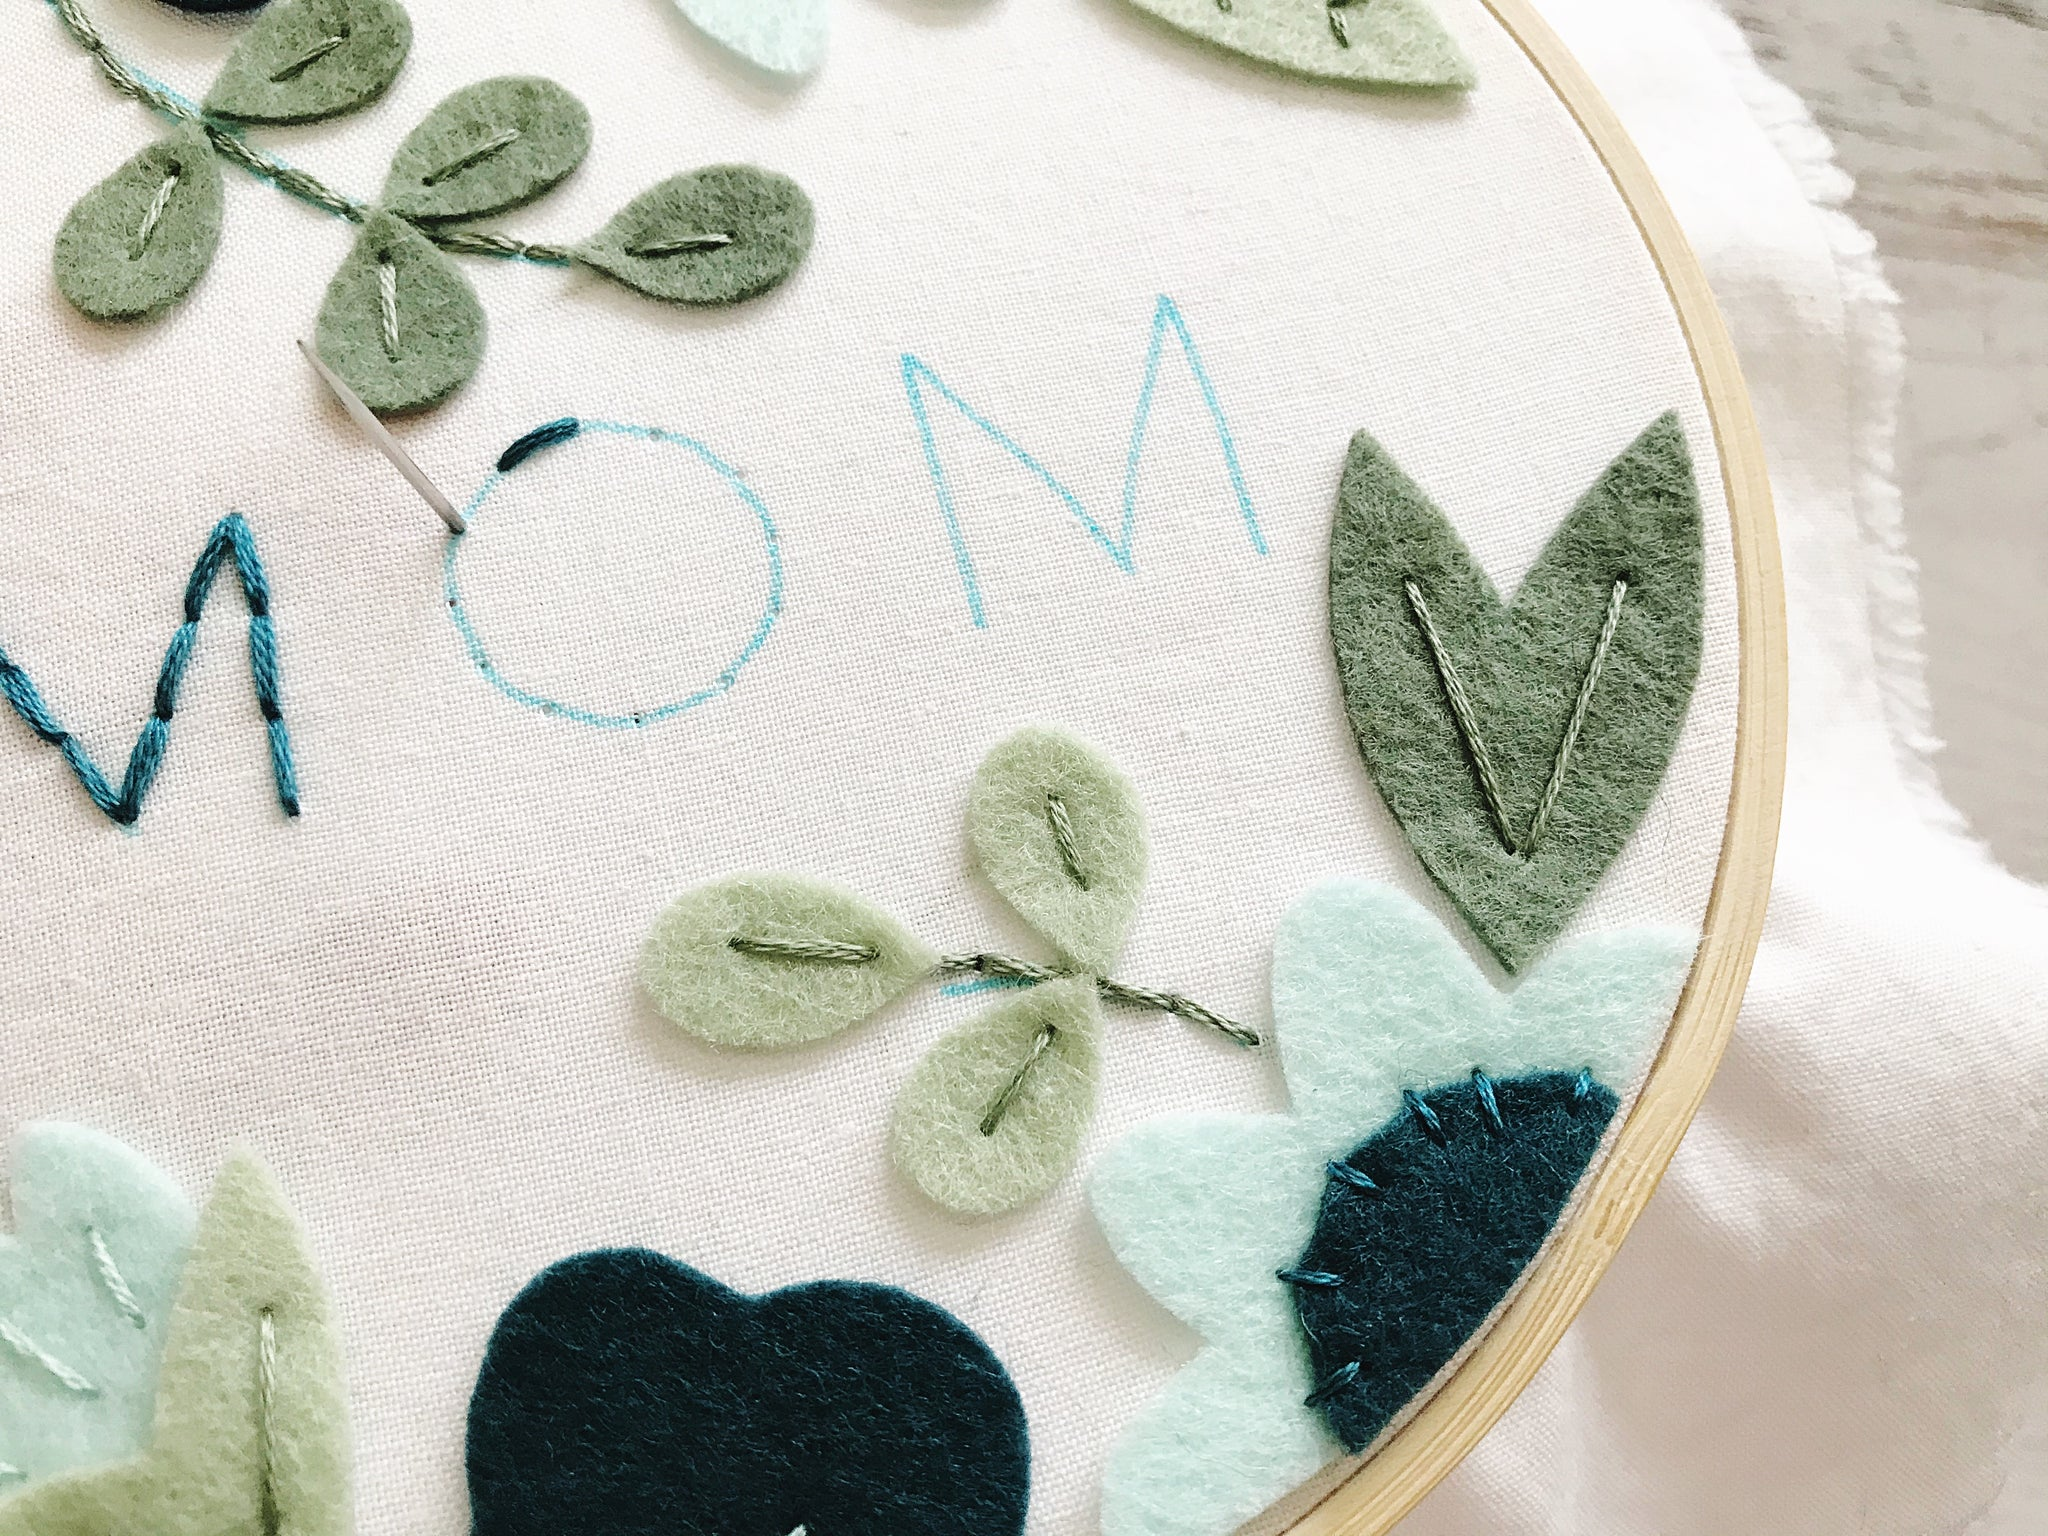 Stitching text onto the hoop